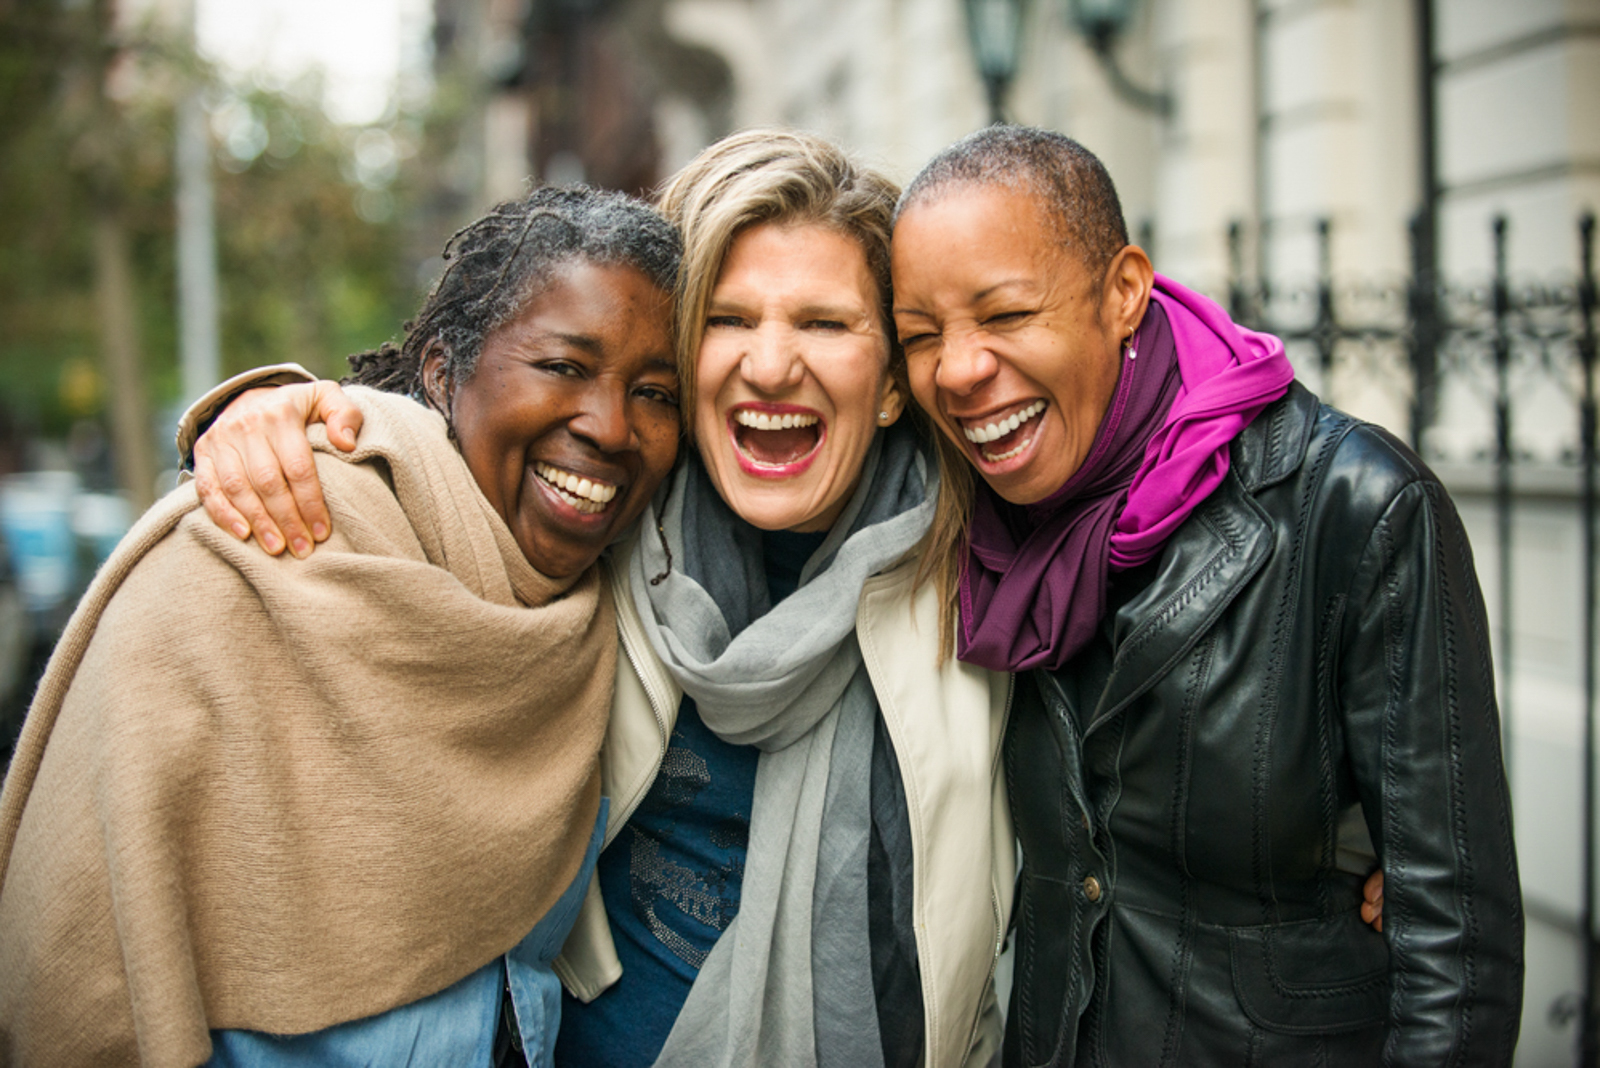 Three women hugging and smiling in a New York City street